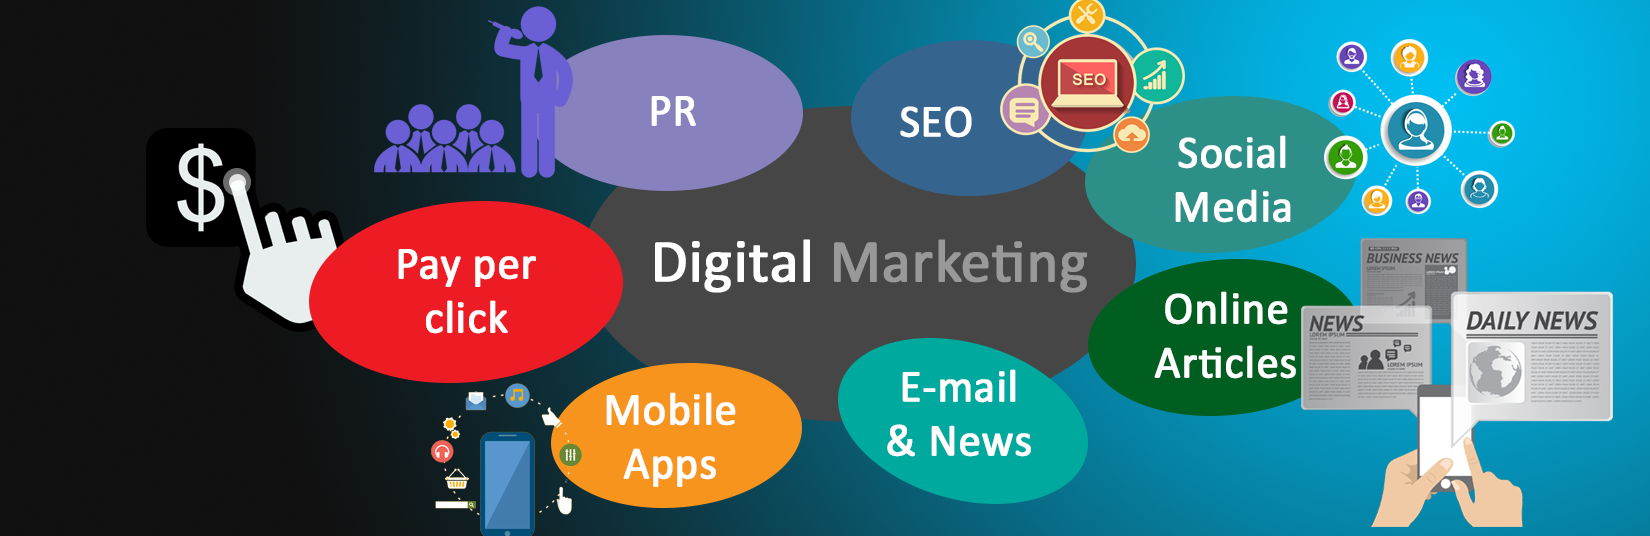 Social Media Agency & Digital Marketing Services in India!